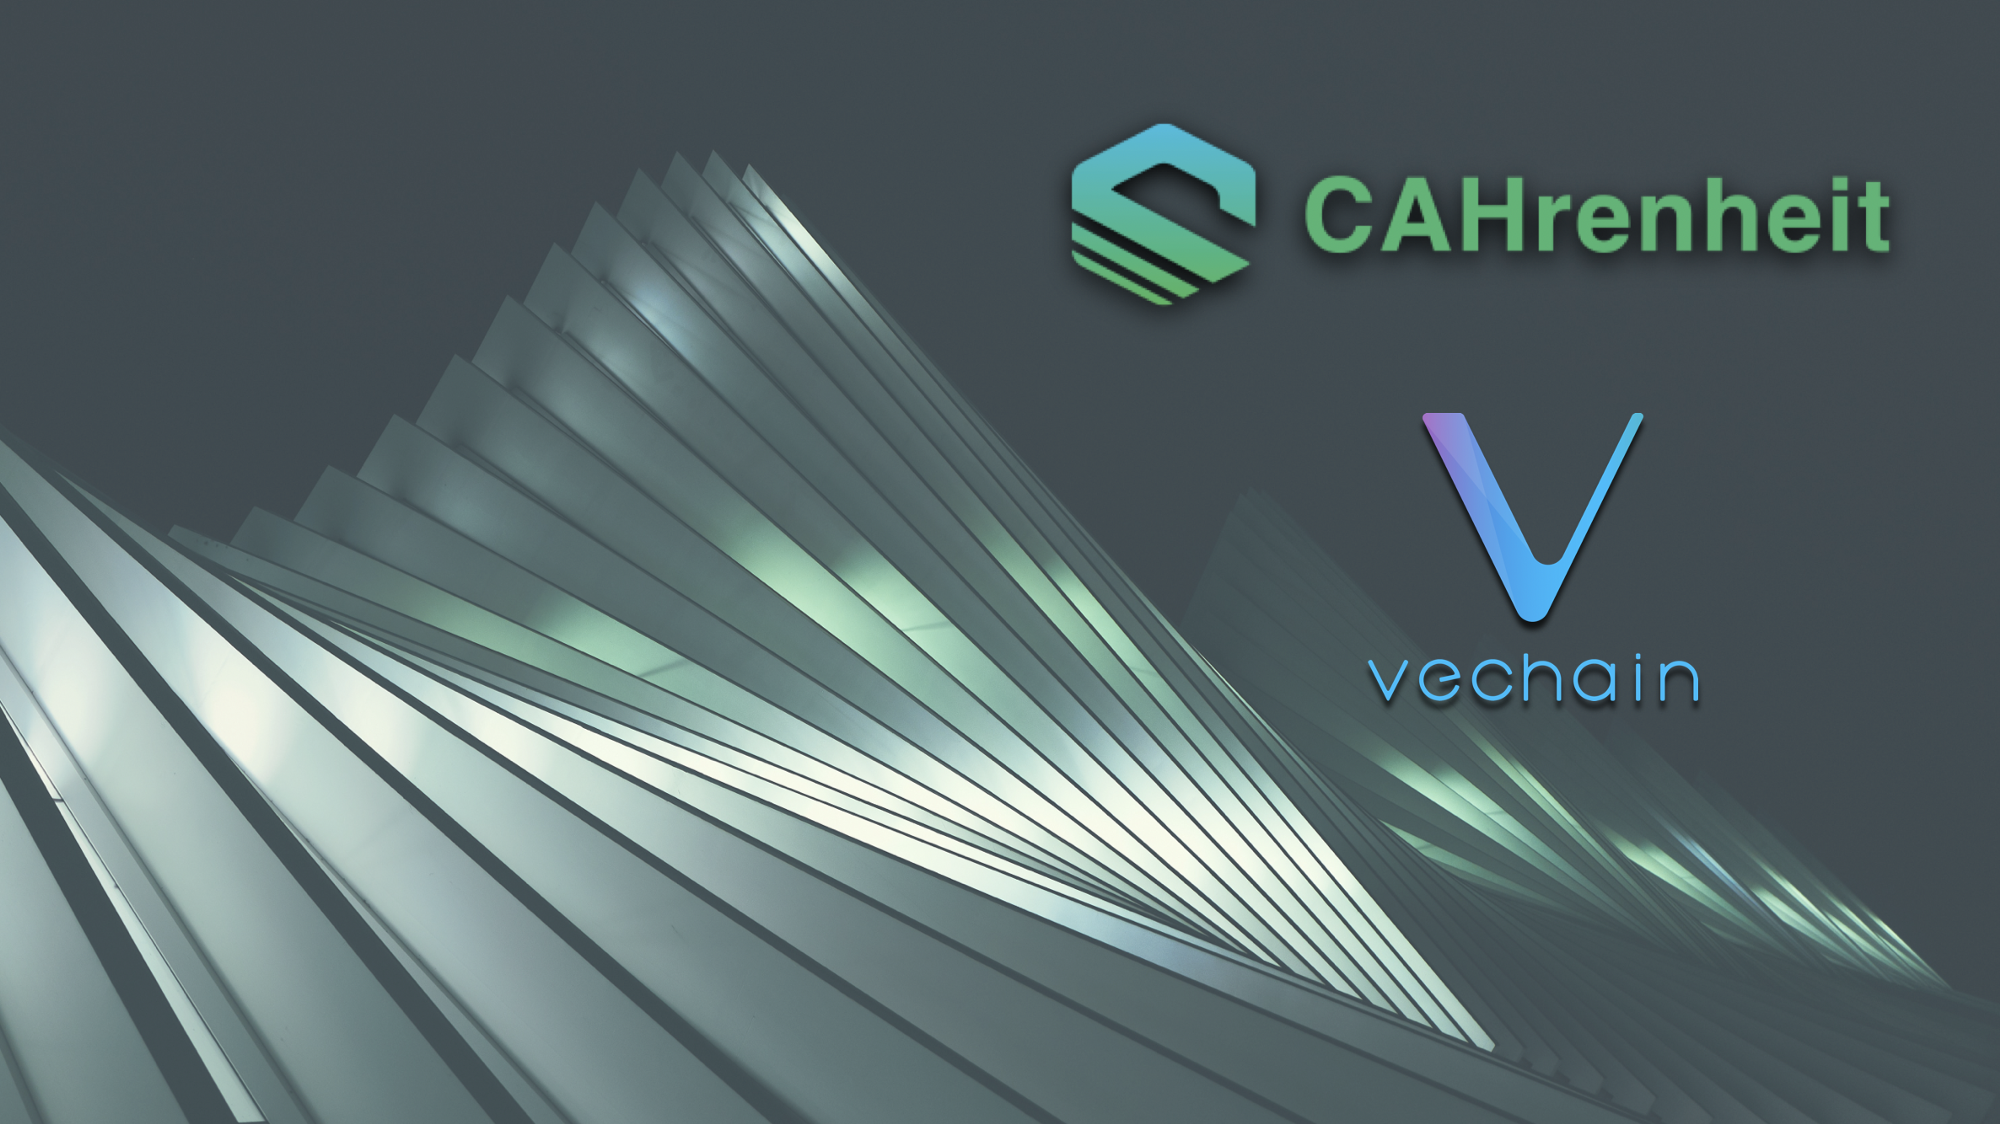 medium.com - VeChain Foundation - Announcing Cahrenheit, a Blockchain-Based Ecosystem for the Automotive Industry Powered by the…